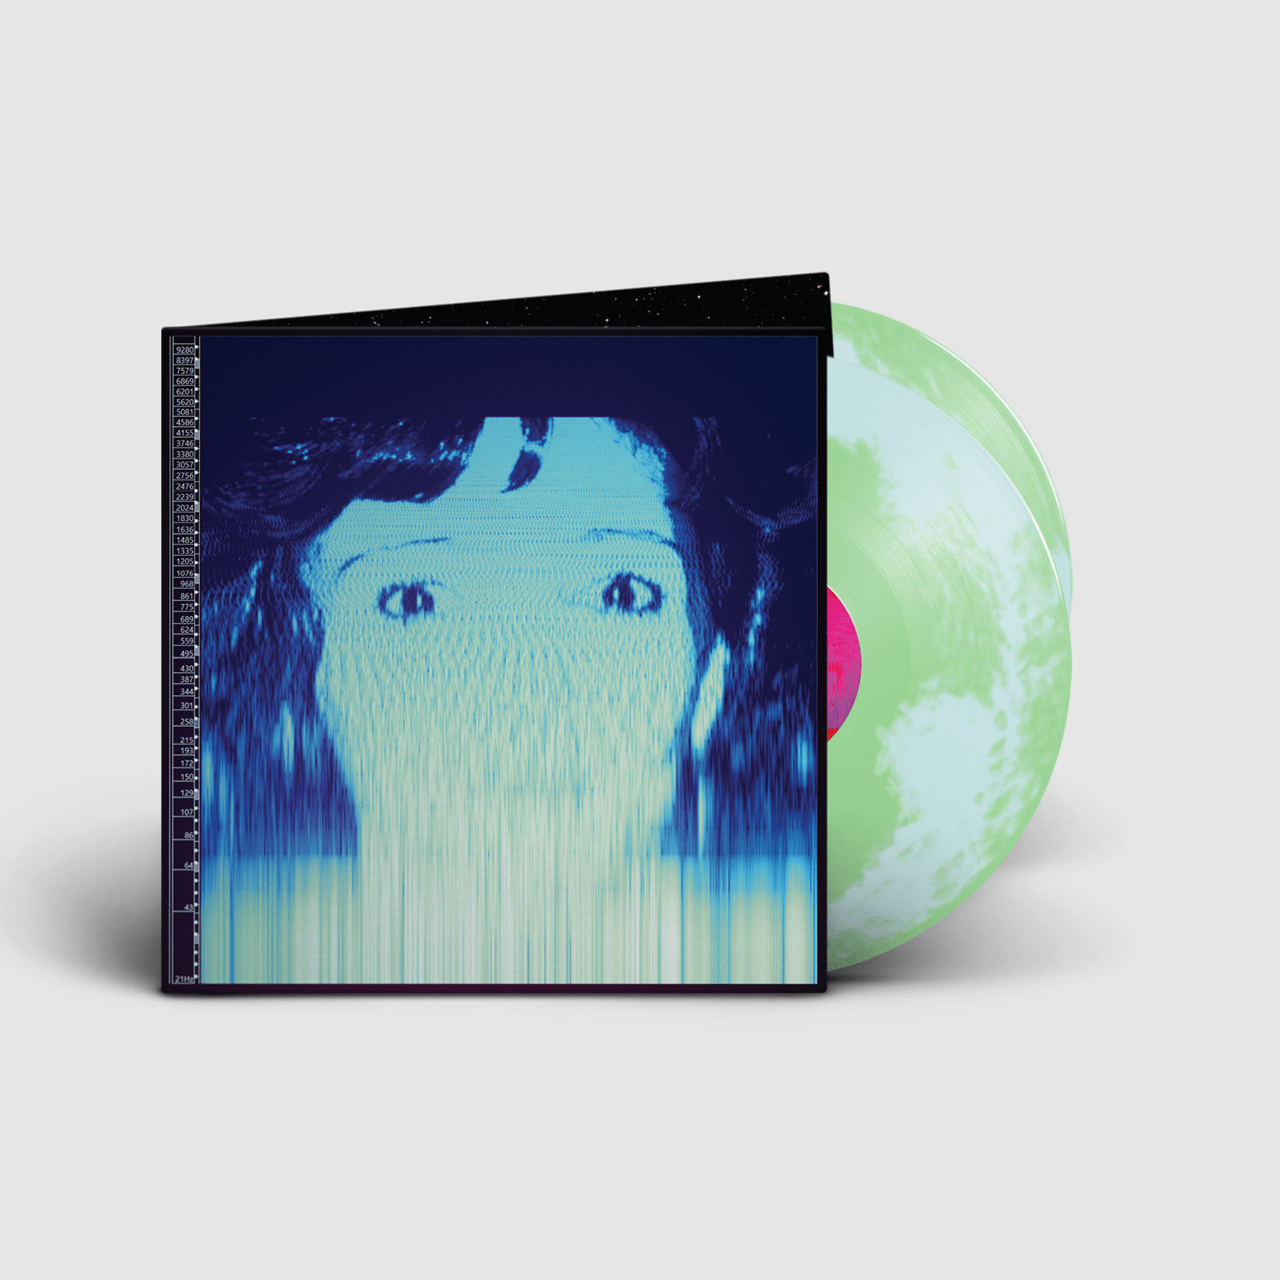 We Will Always Love You - Limited Edition Doublemint & Electric Blue Vinyl - 1